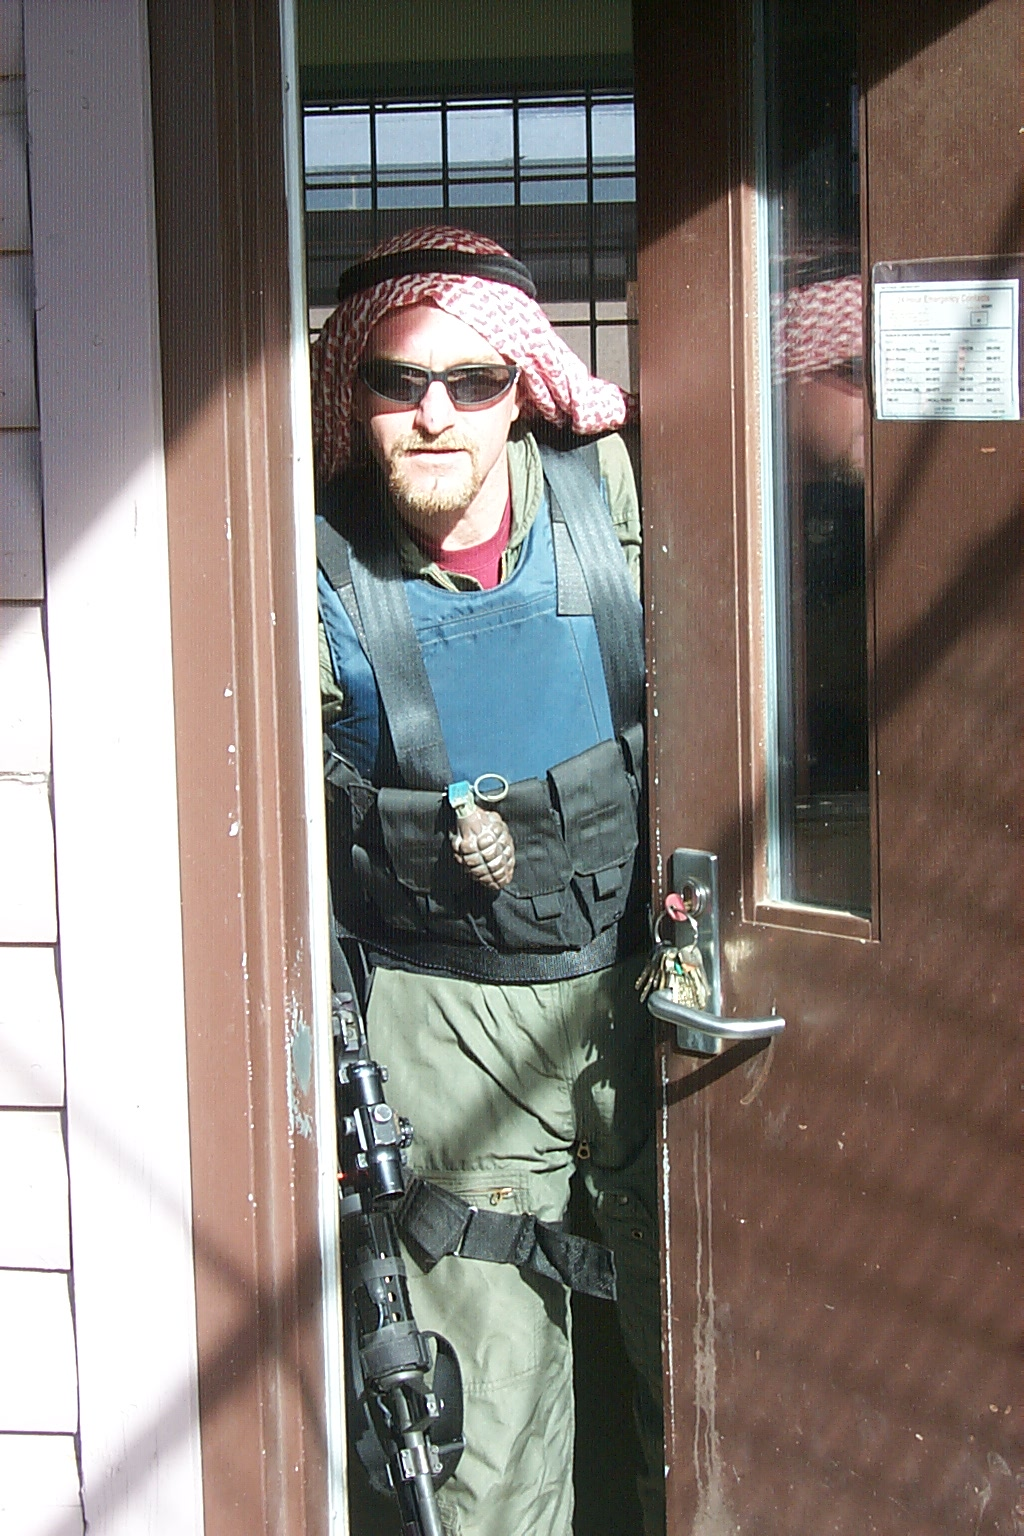 It was fun playing a terrorist in an exercise